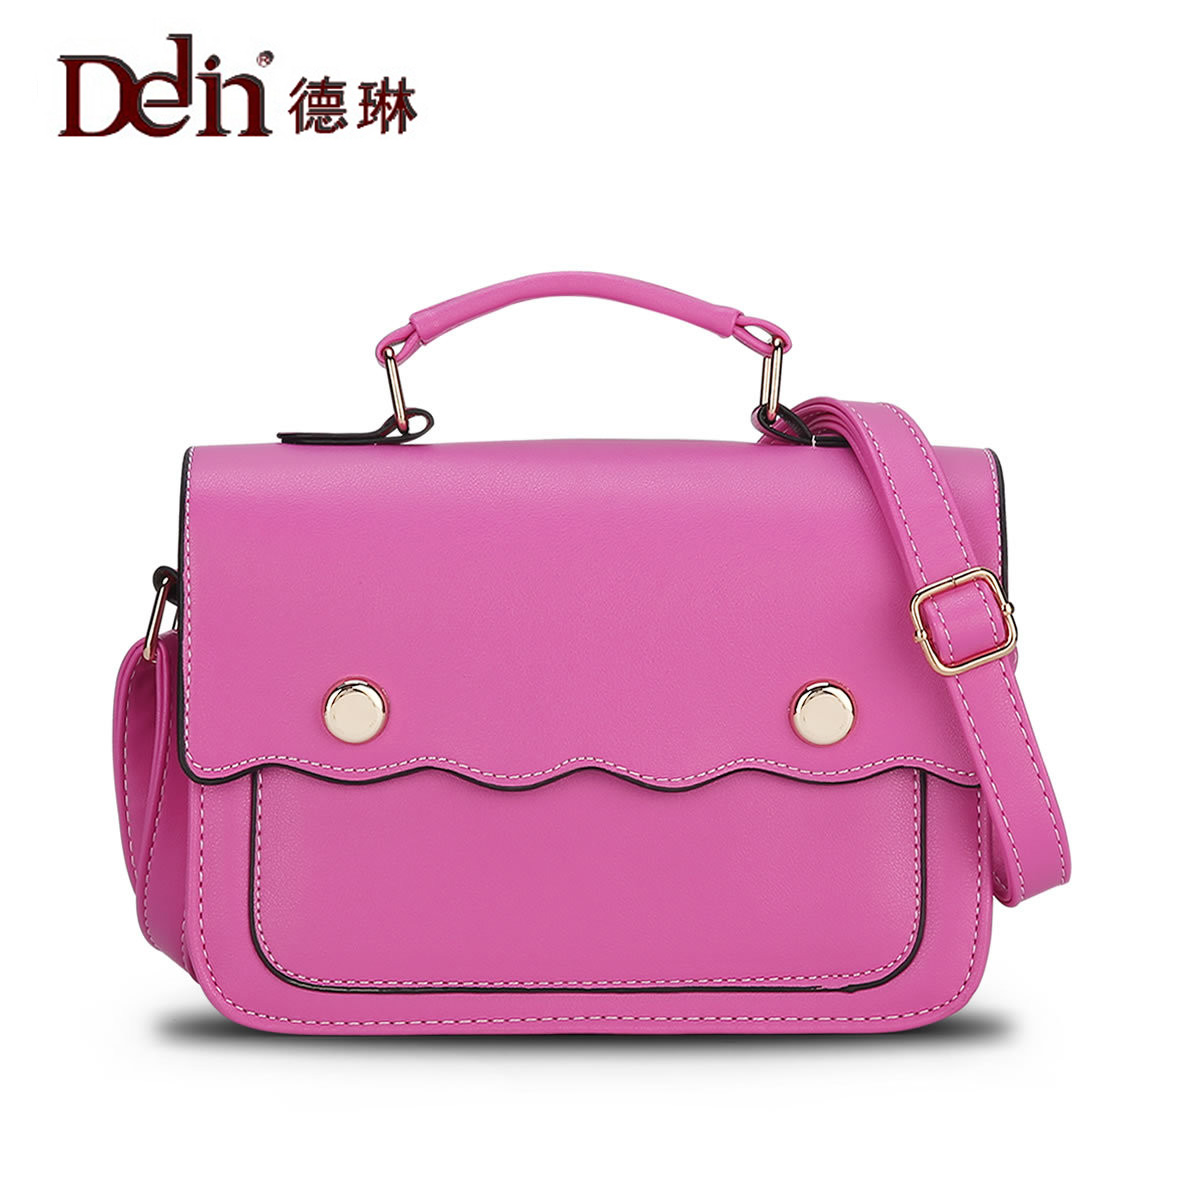 DELIN The new trend of bag manufacturers selling 2017 Korean wave PU Leather Shoulder Messenger Handbag the power of benefits selling